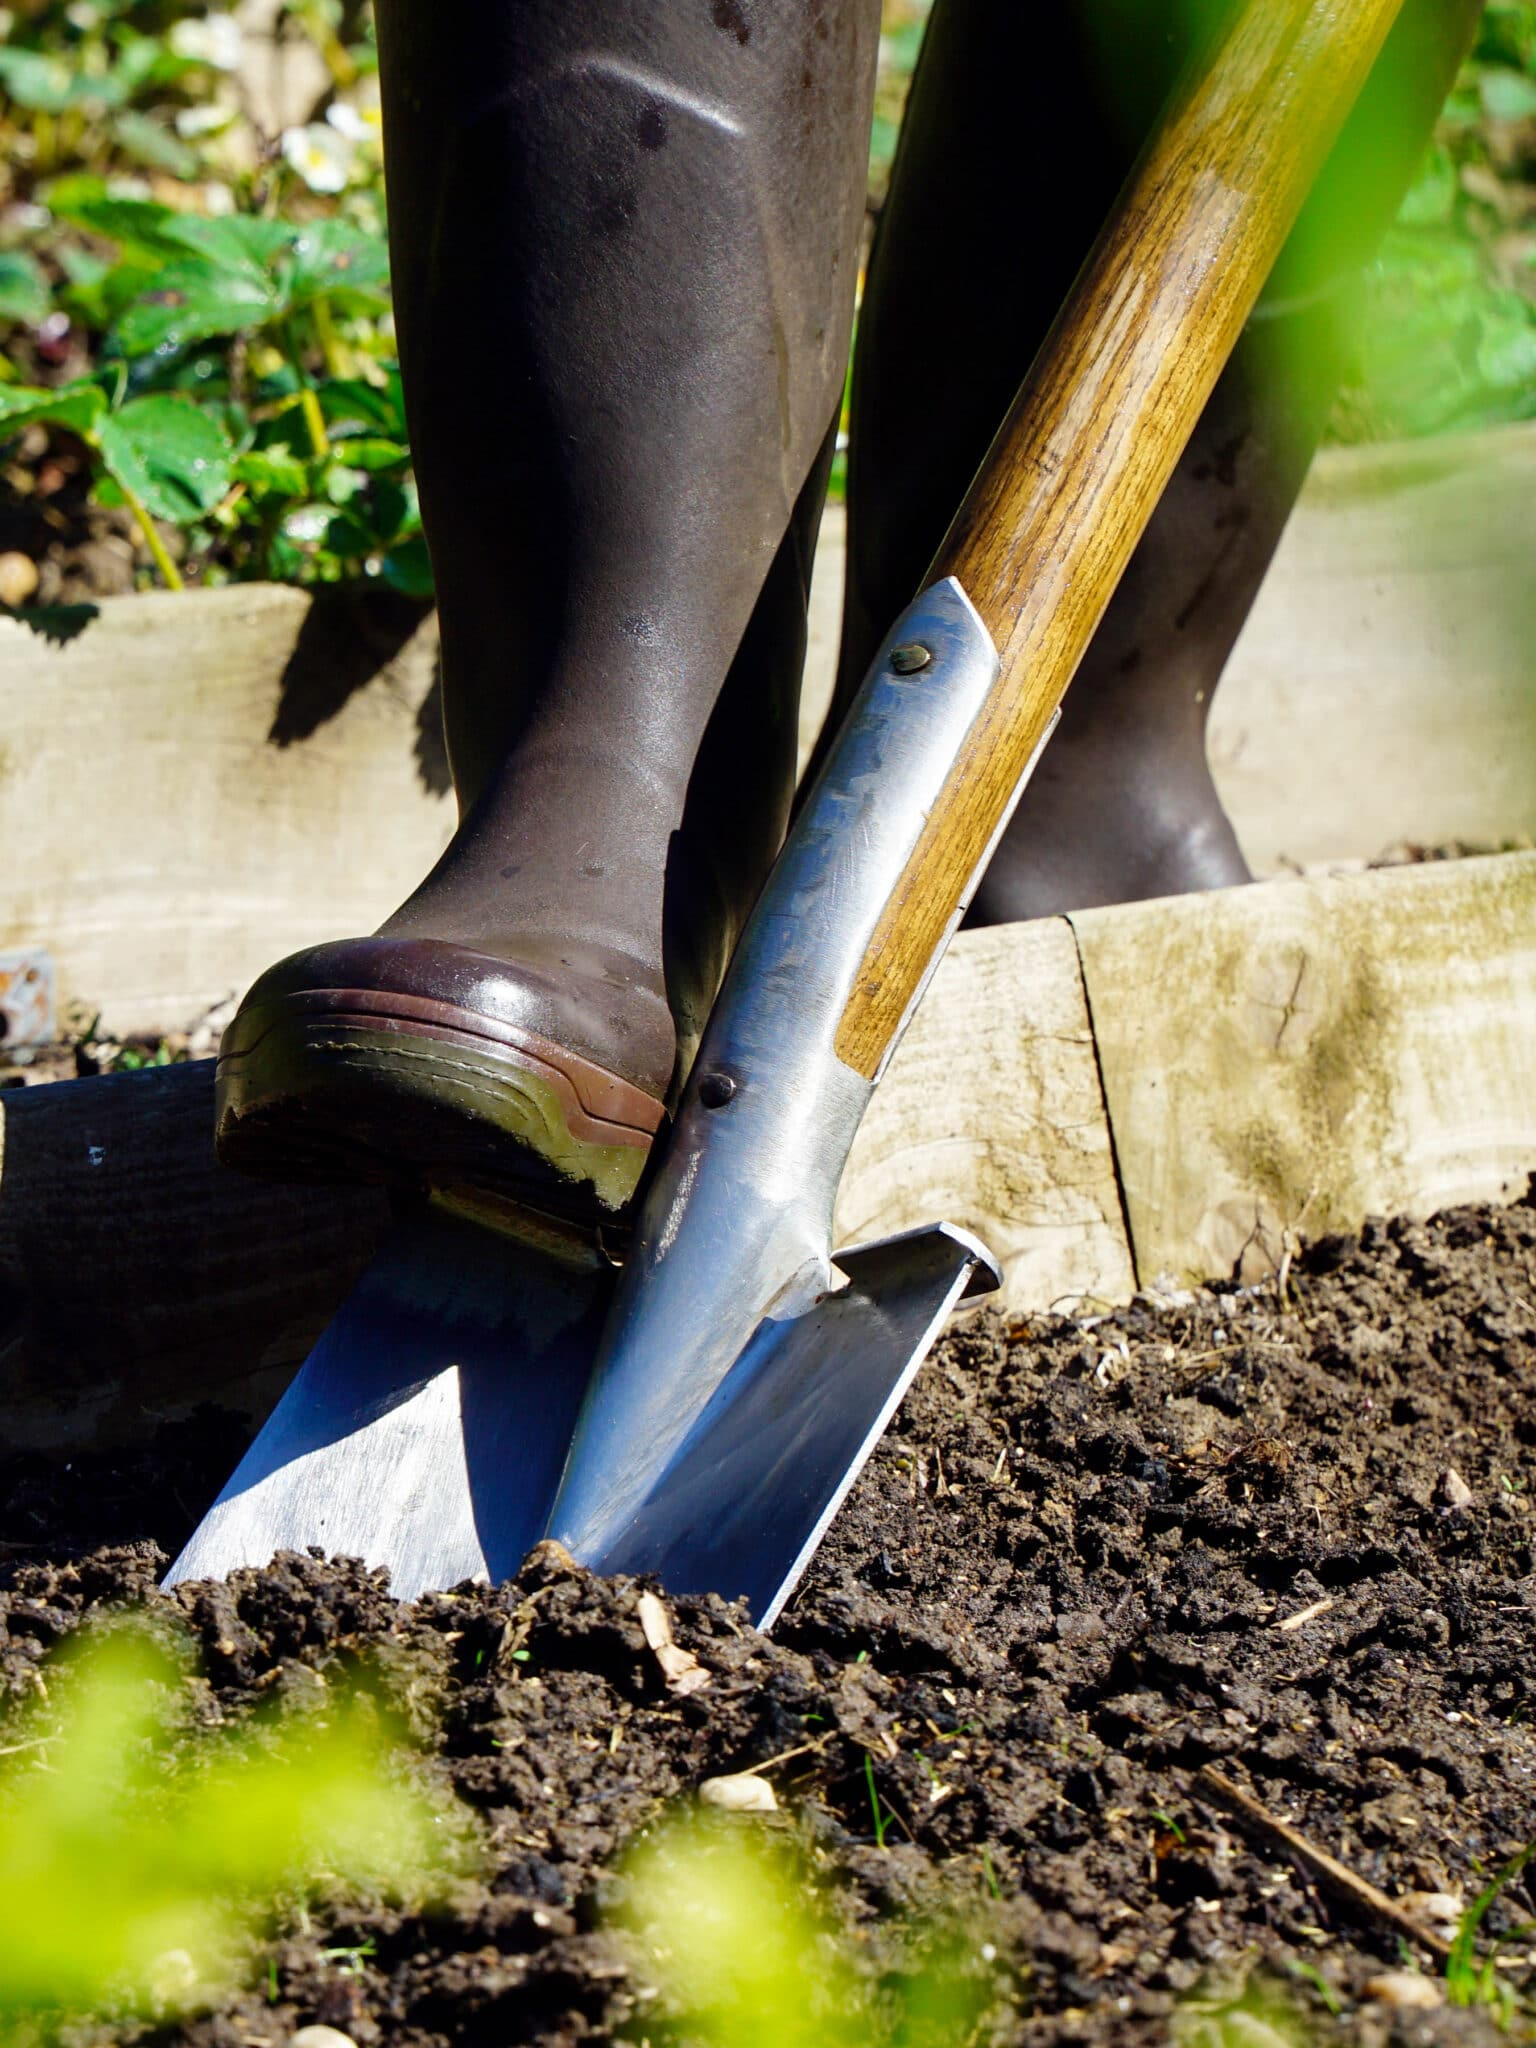 A shovel being pushed into the soil by a gardener's foot.